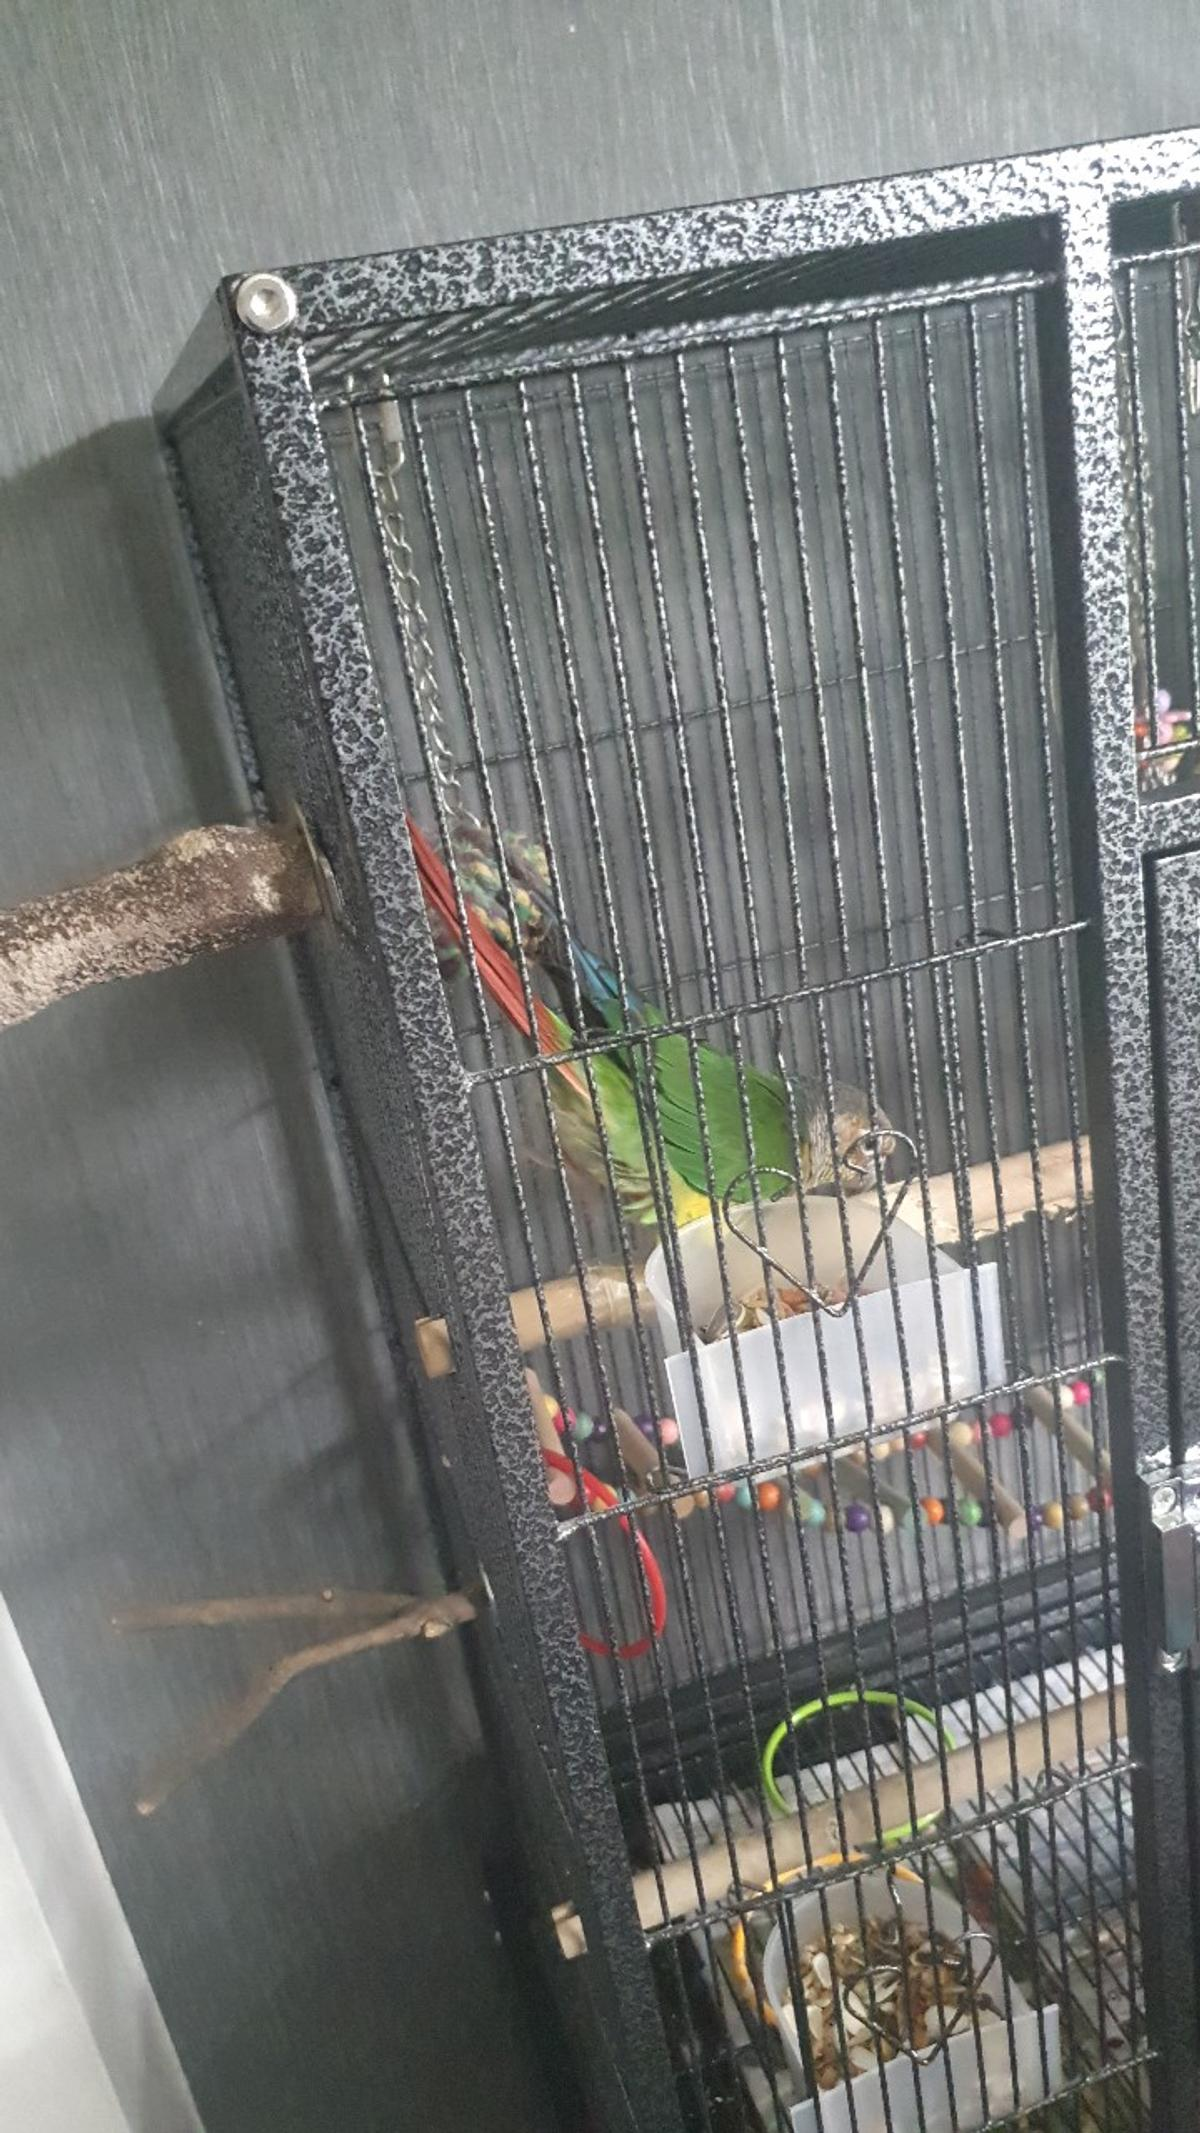 here is freddie, he likes to play football, he likes to dance to music and ringtones, he is very hand tame, he likes to walk around and sit on your shoulder he does talk in your ear he says give a kiss, whats up, hello, and copies your laugh comes with cage toys and some food